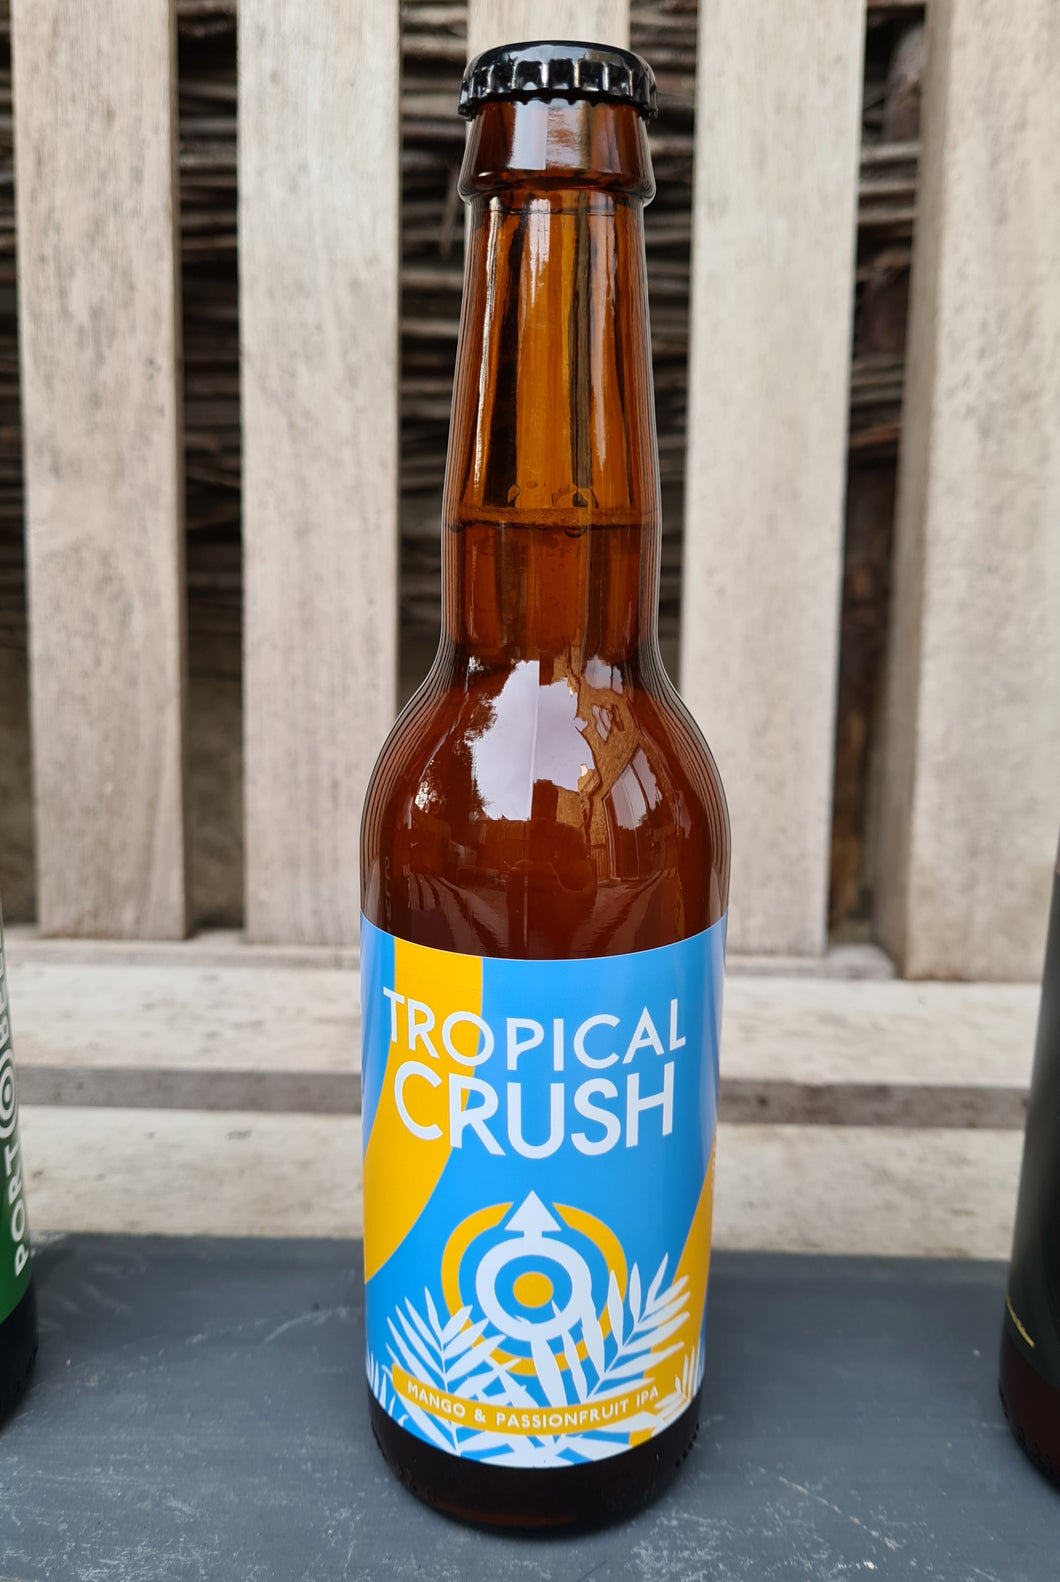 Portobello - Tropical Crush IPA - 4.4% ABV (330ml)